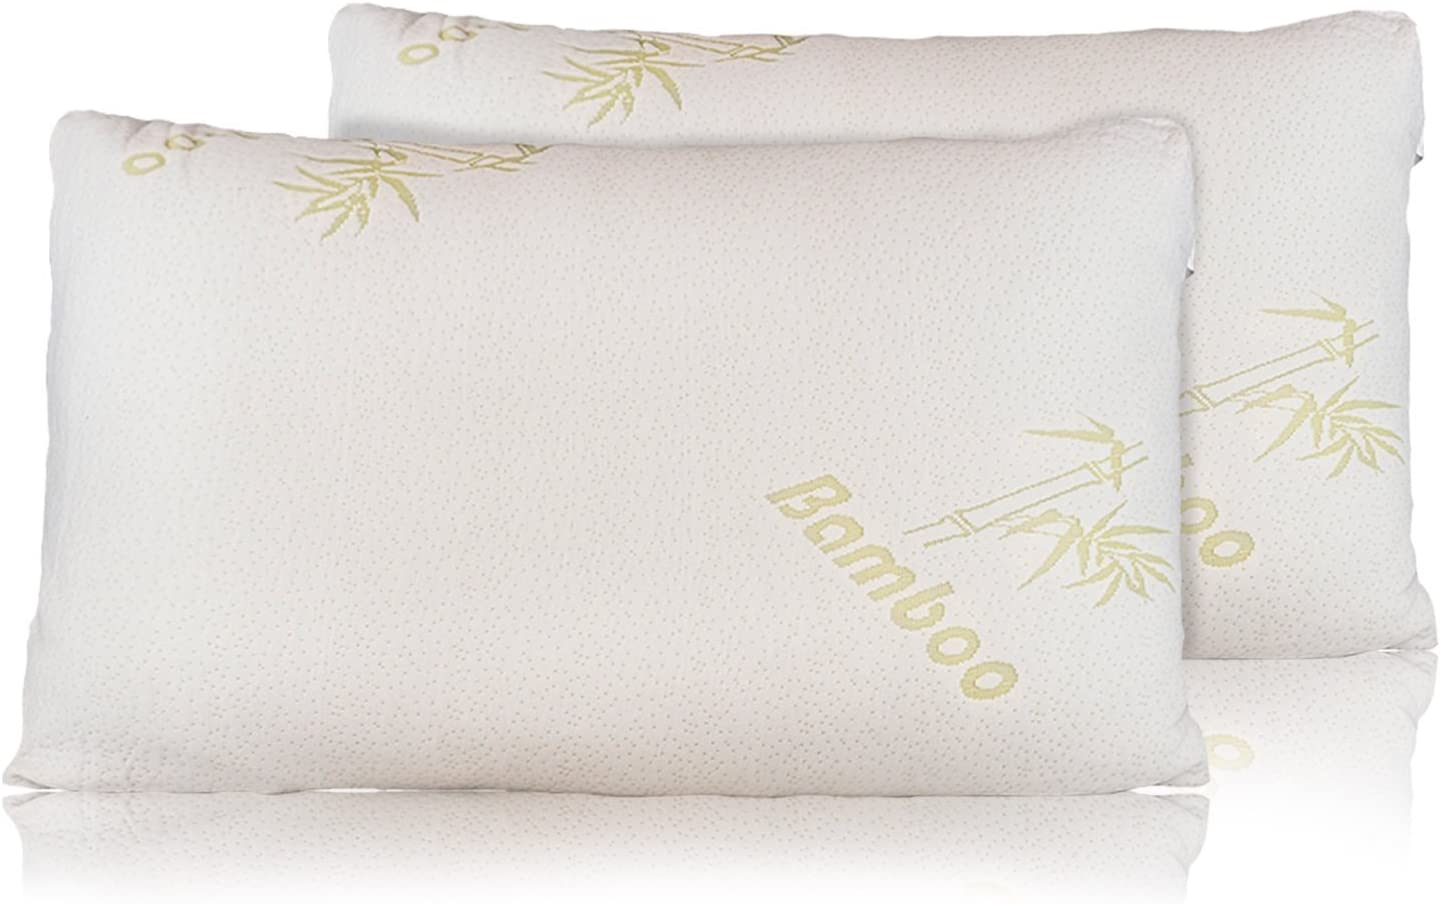 Relax Home Life - Firm Bamboo Pillow With Shredded Memory Foam and Cool Removable Cover (2Pk King)